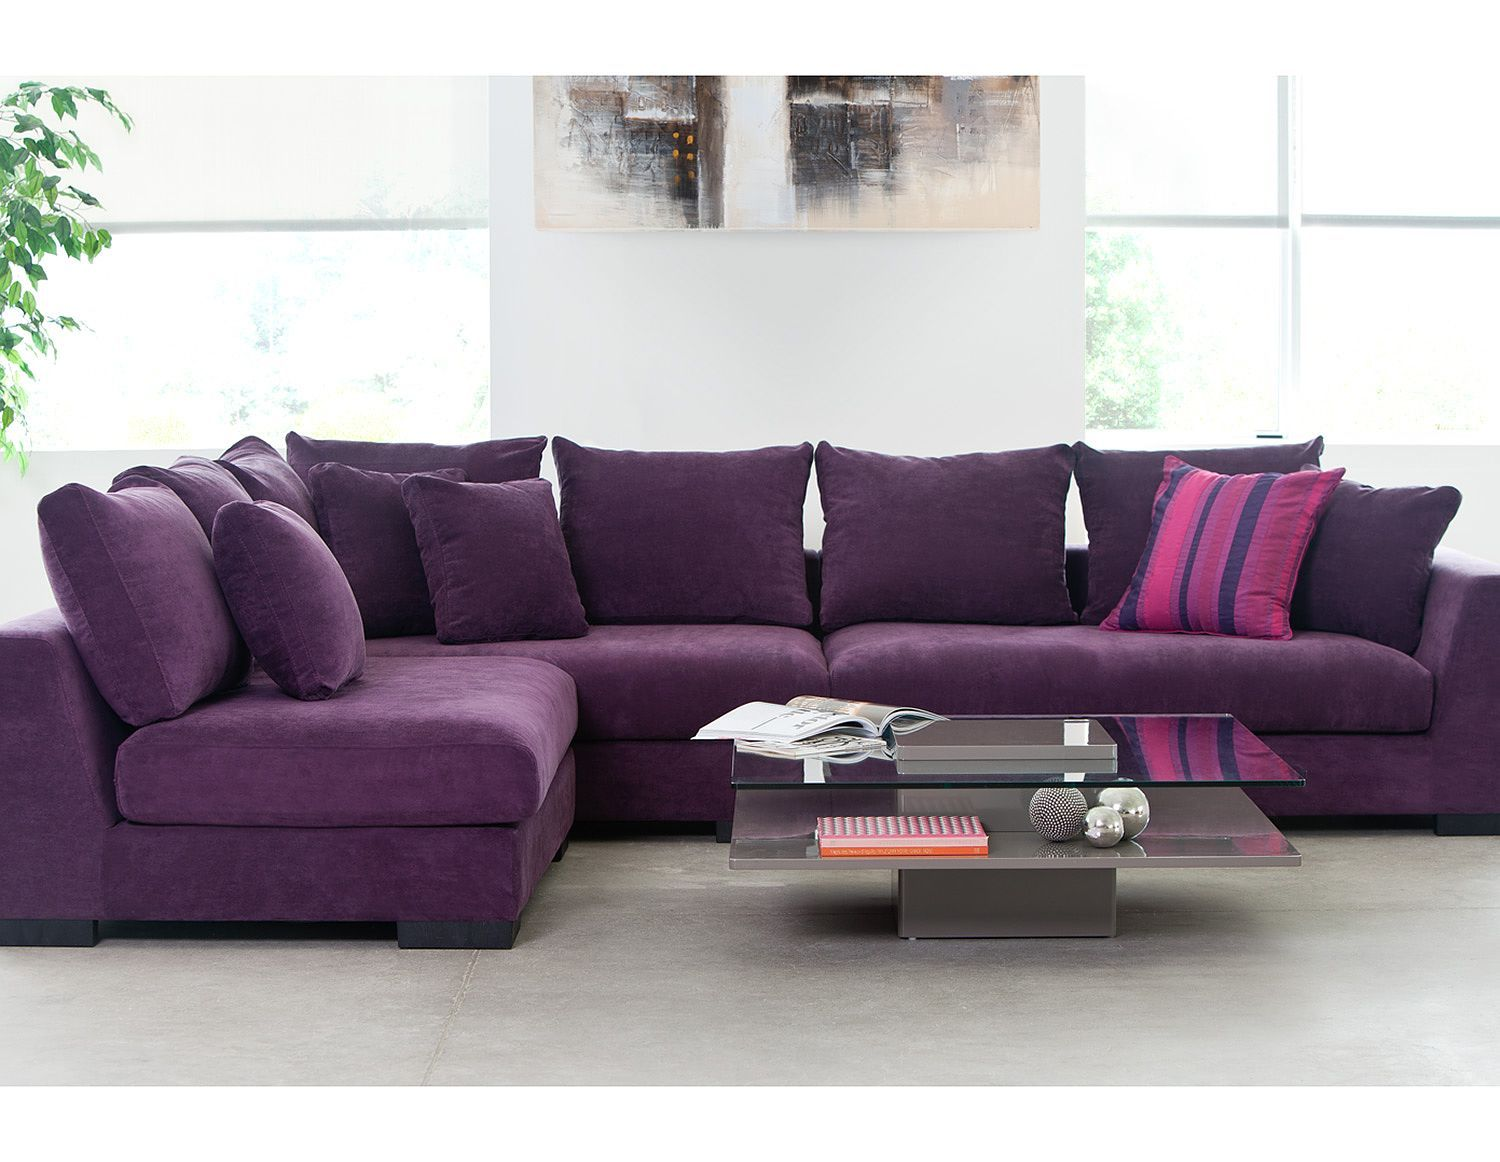 Living Room : Sectional Sofas : Cooper (Purple) *Faints* A Couch In